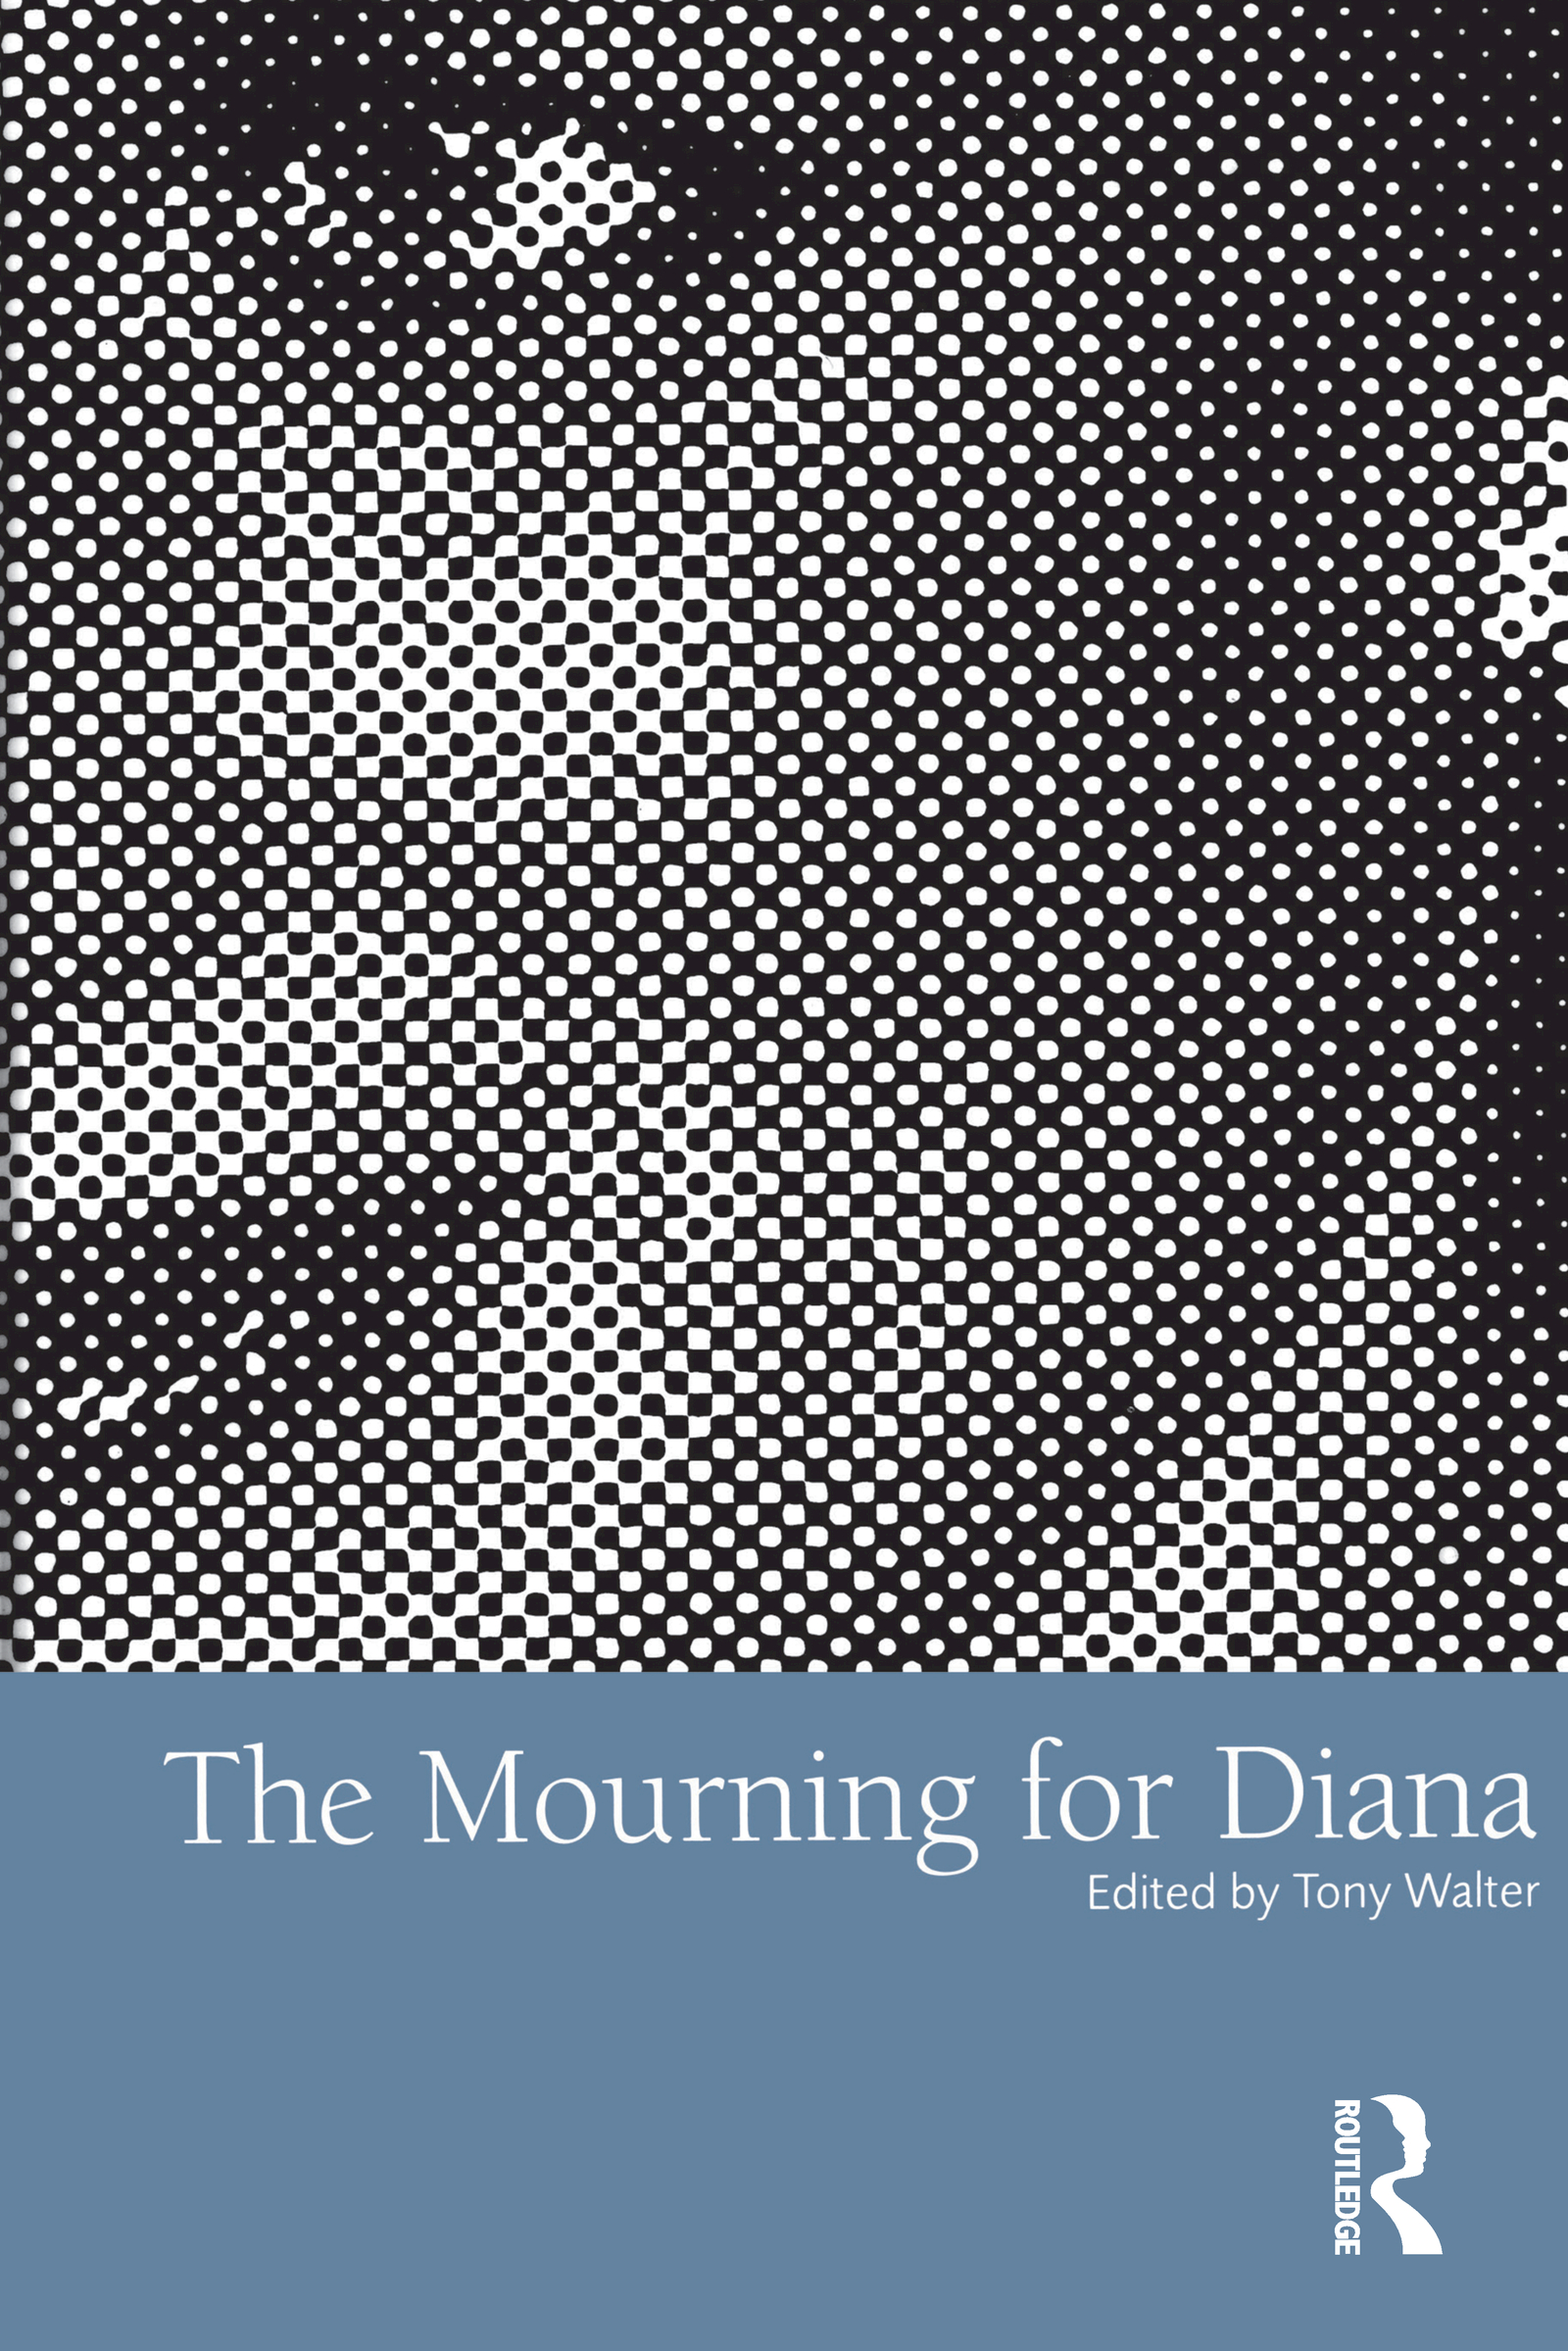 A Nation Under Stress: The Psychological Impact of Diana's Death